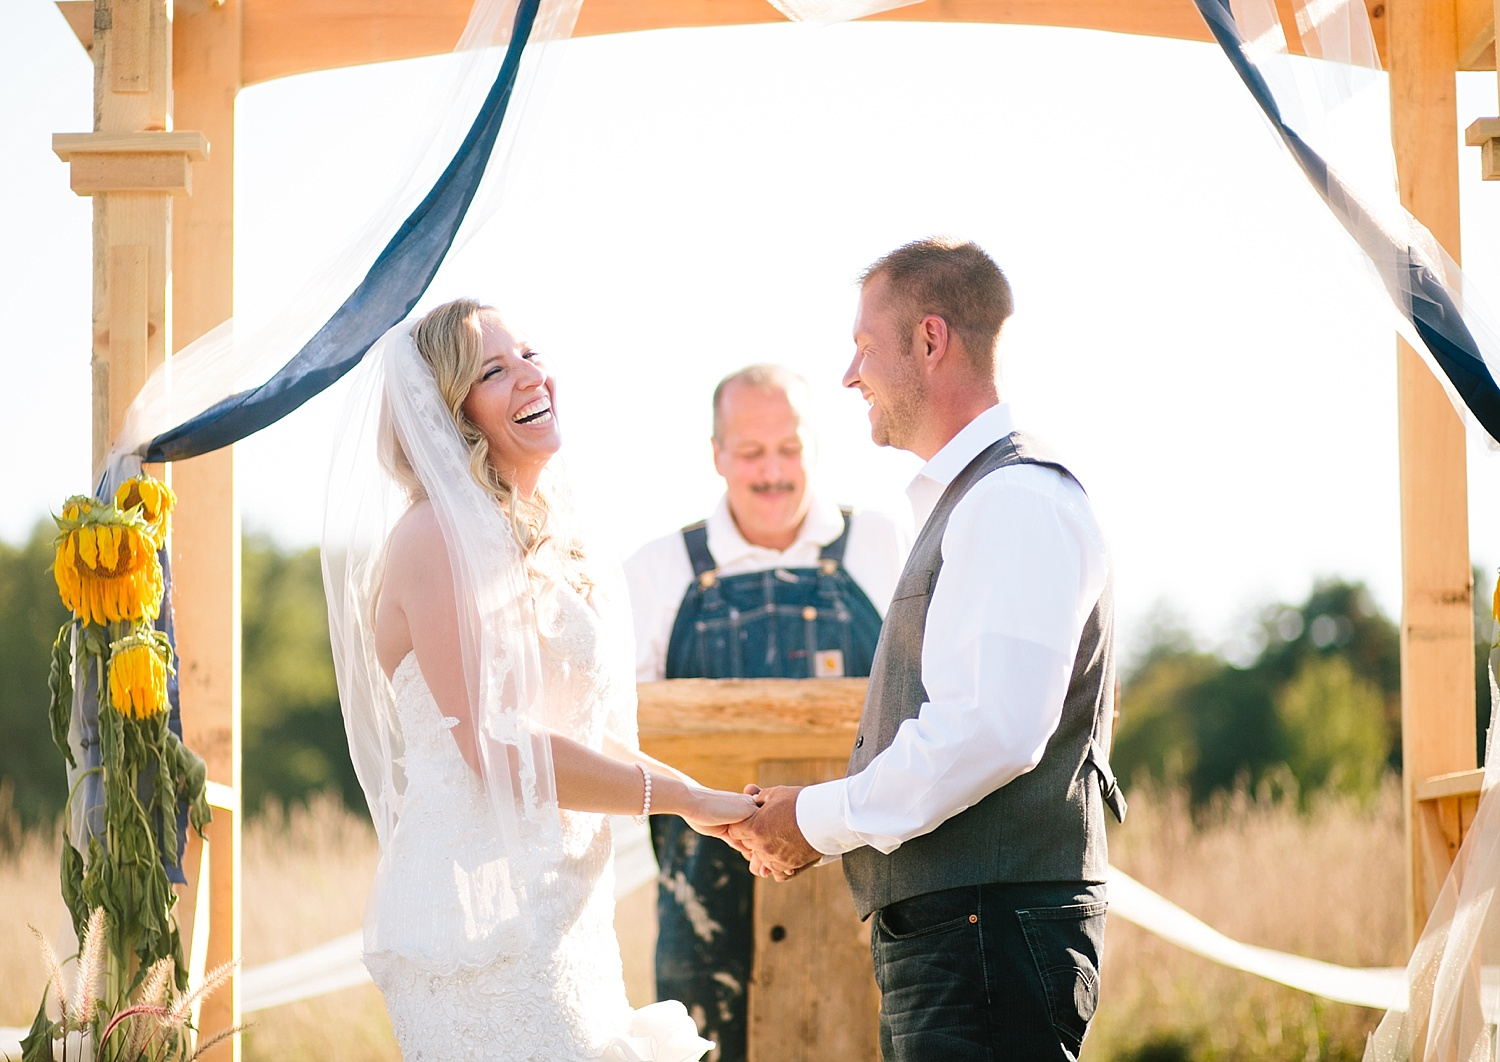 jennyryan_newbeginnings_farmstead_upstatenewyork_wedding_image088.jpg